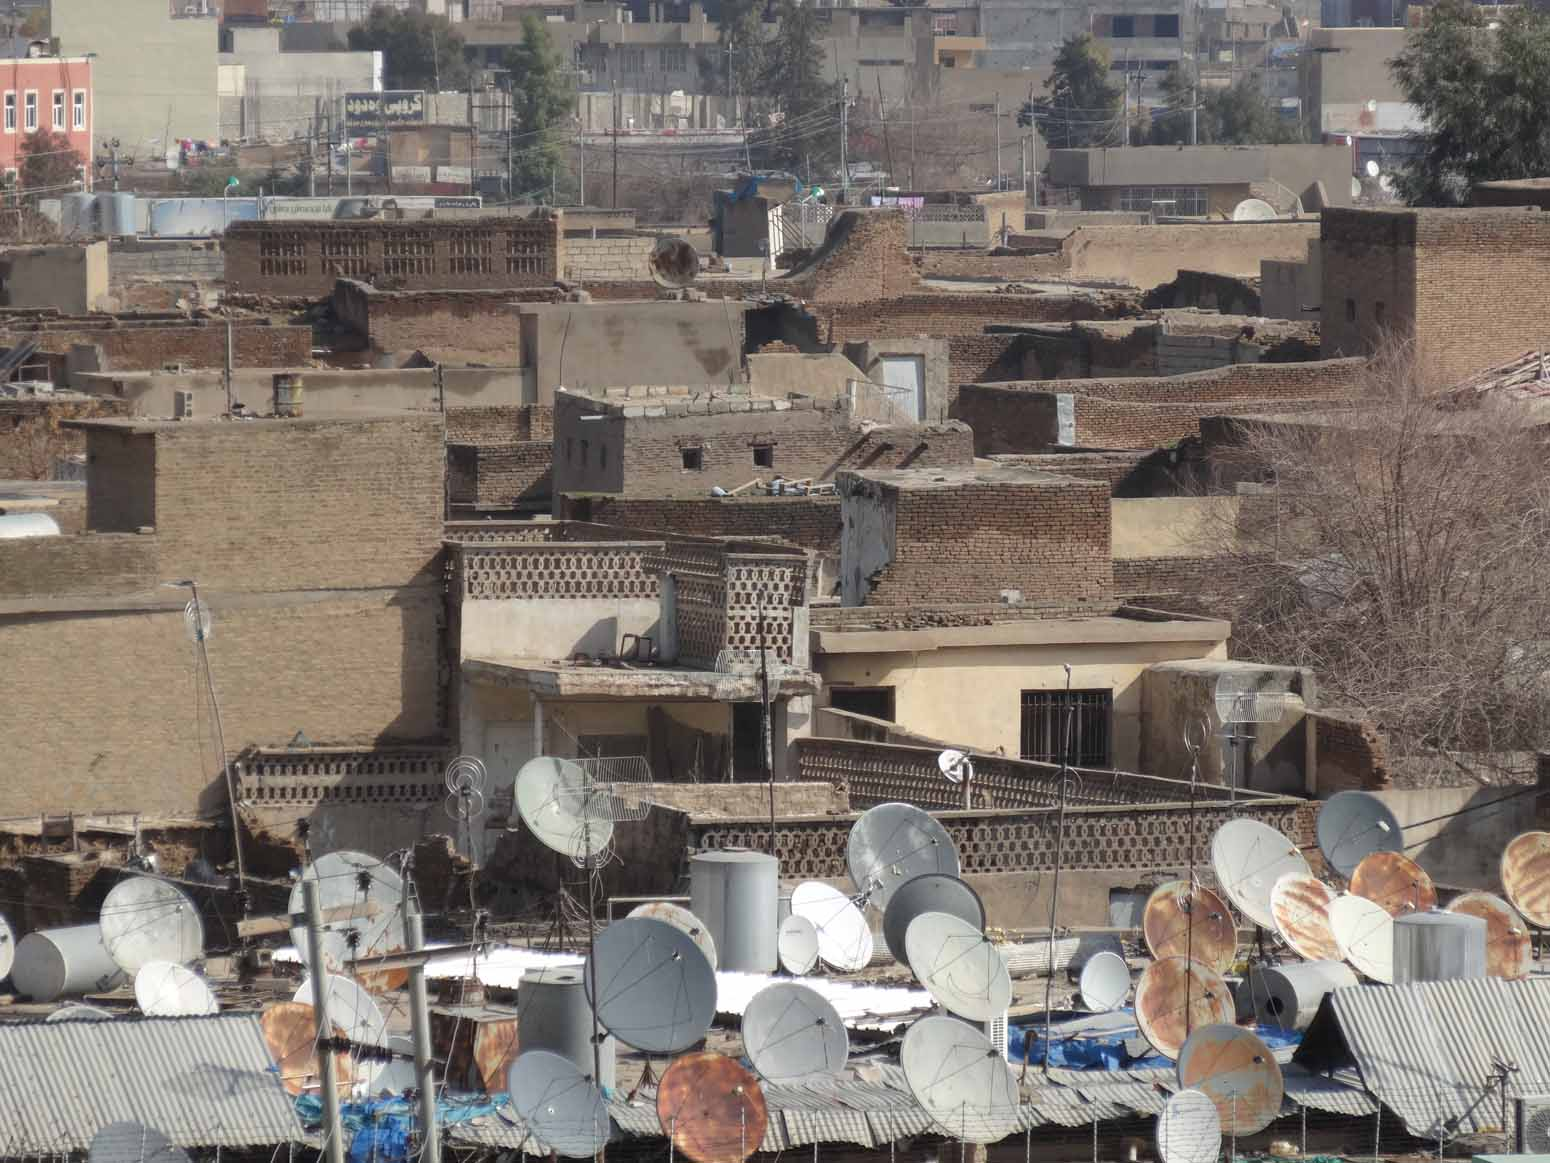 Ancient rooftops and modern satellite dishes